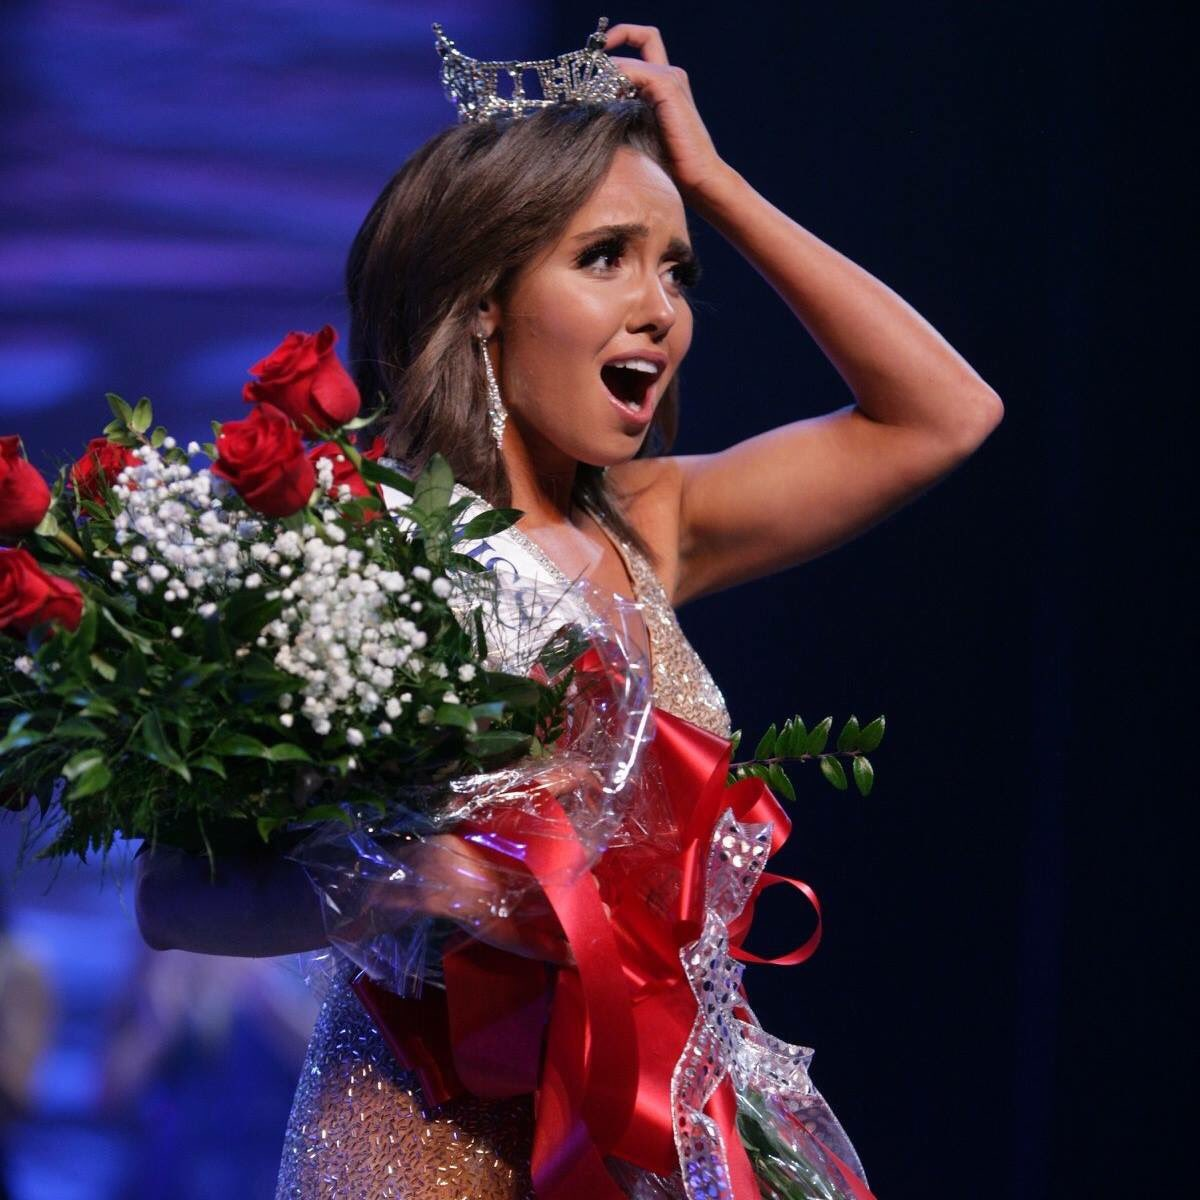 Grace Khachaturian, senior in Journalism, was crowned Miss Illinois 2018.